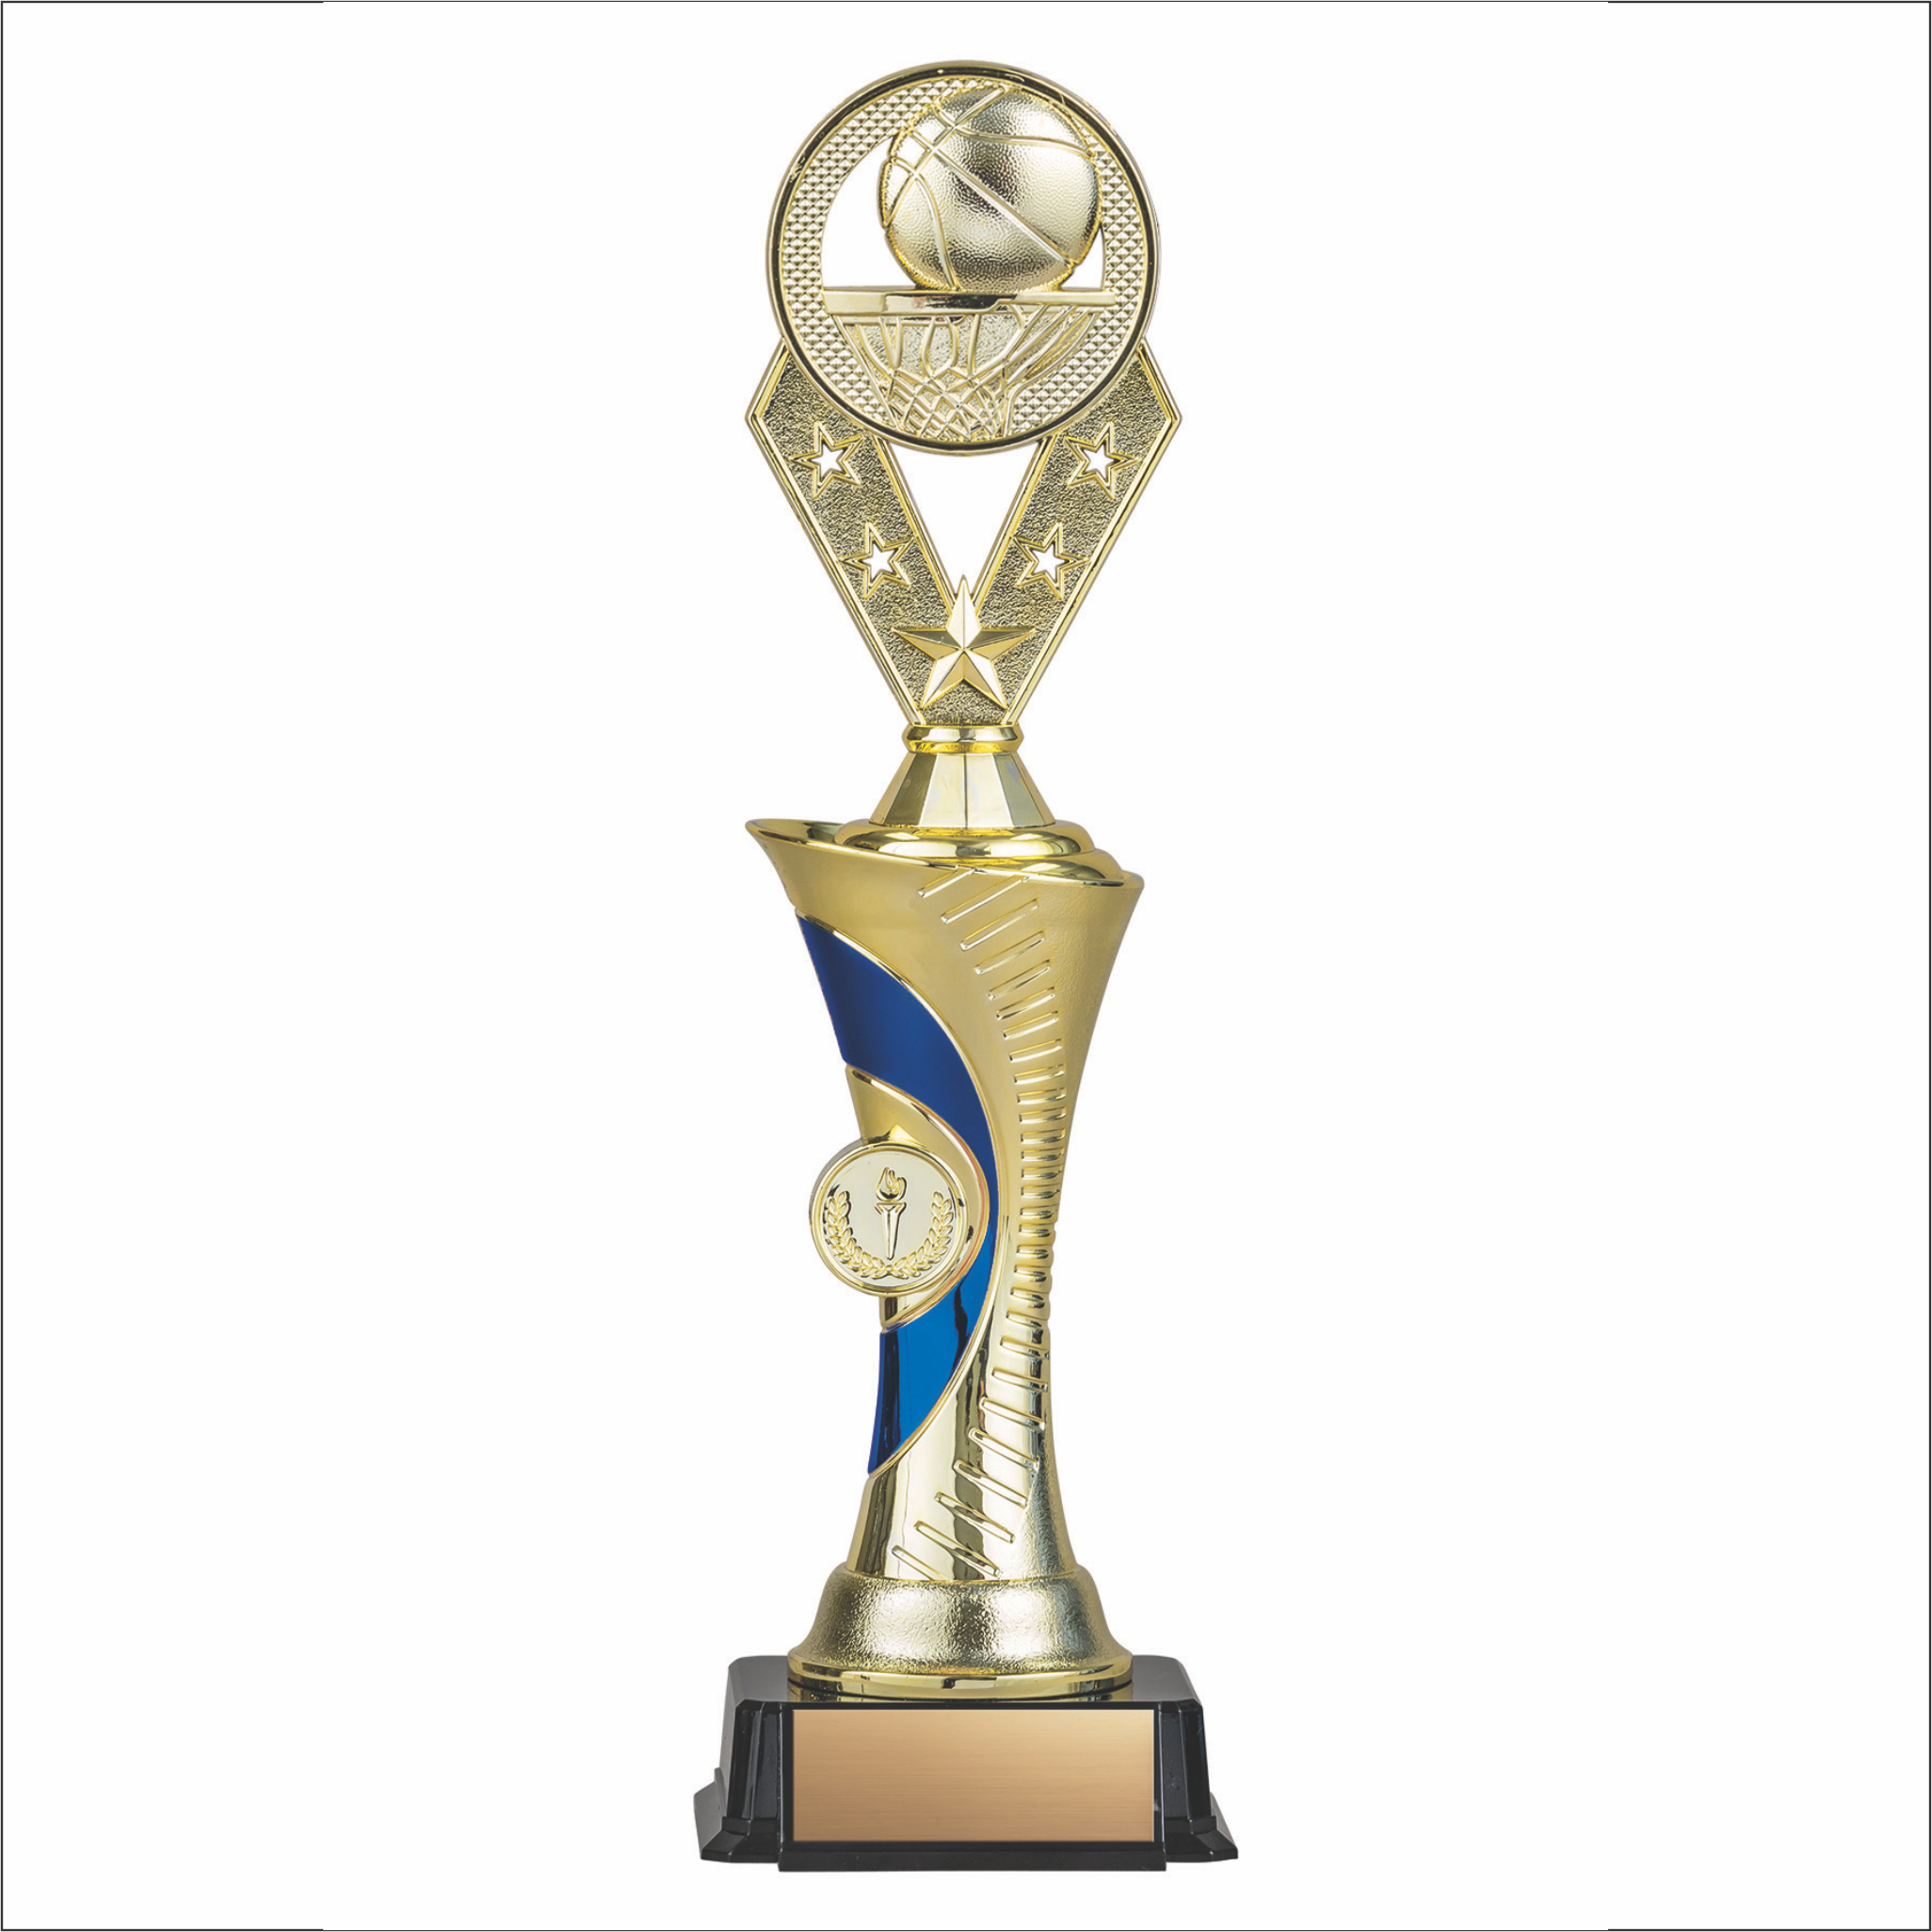 Basketball trophy - Alpha series - Galaxy style